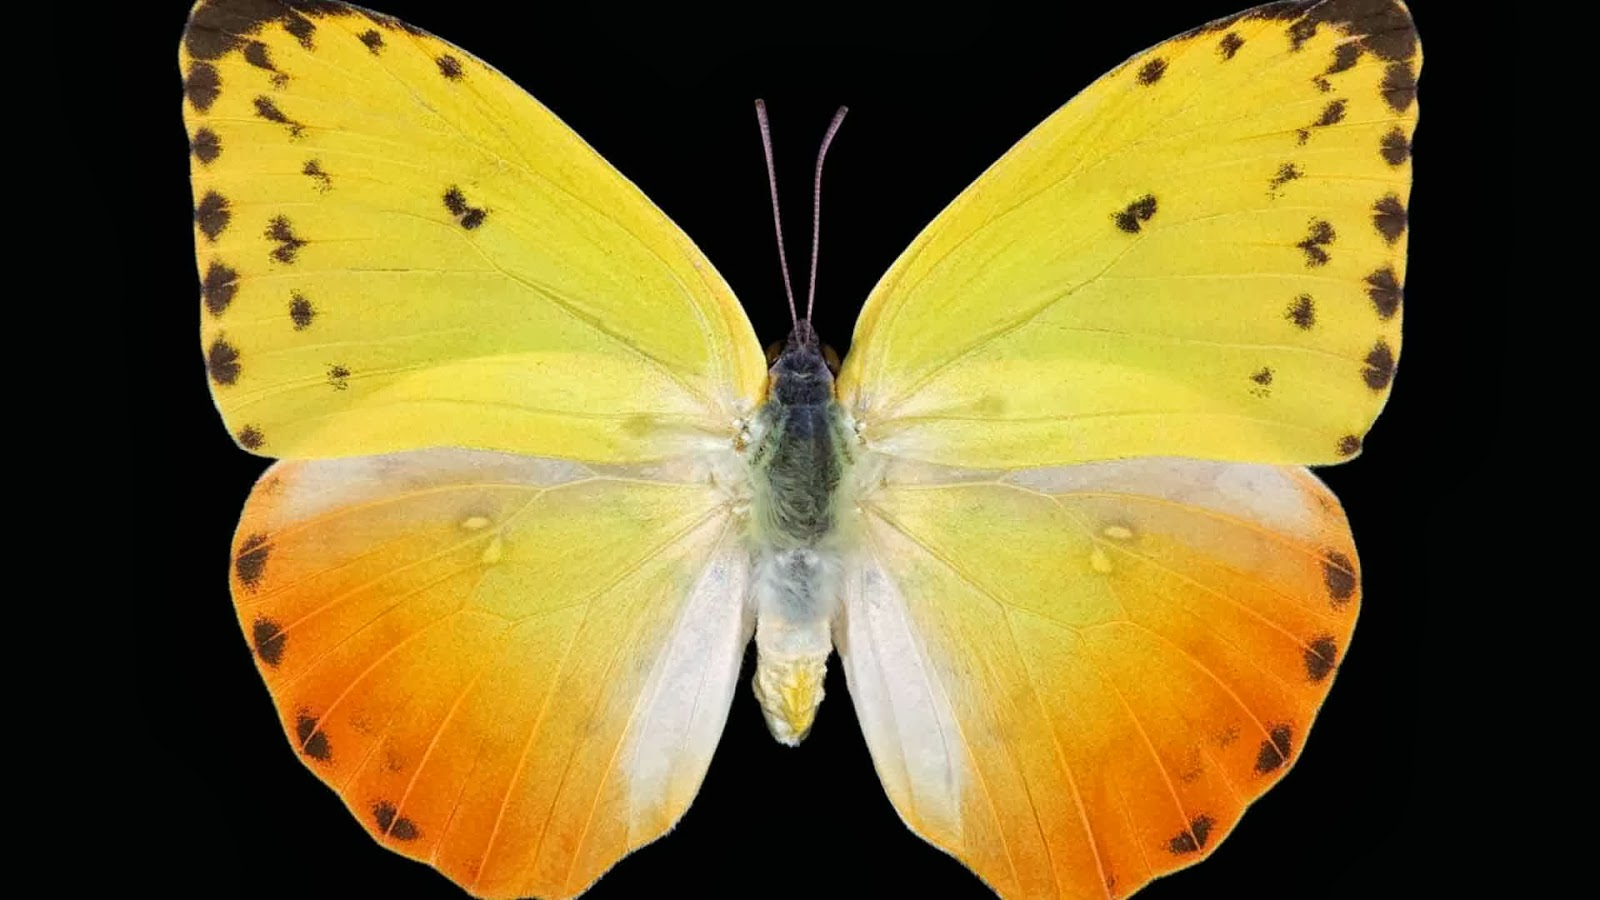 butterfly hq wallpaper 1024x768 - photo #18